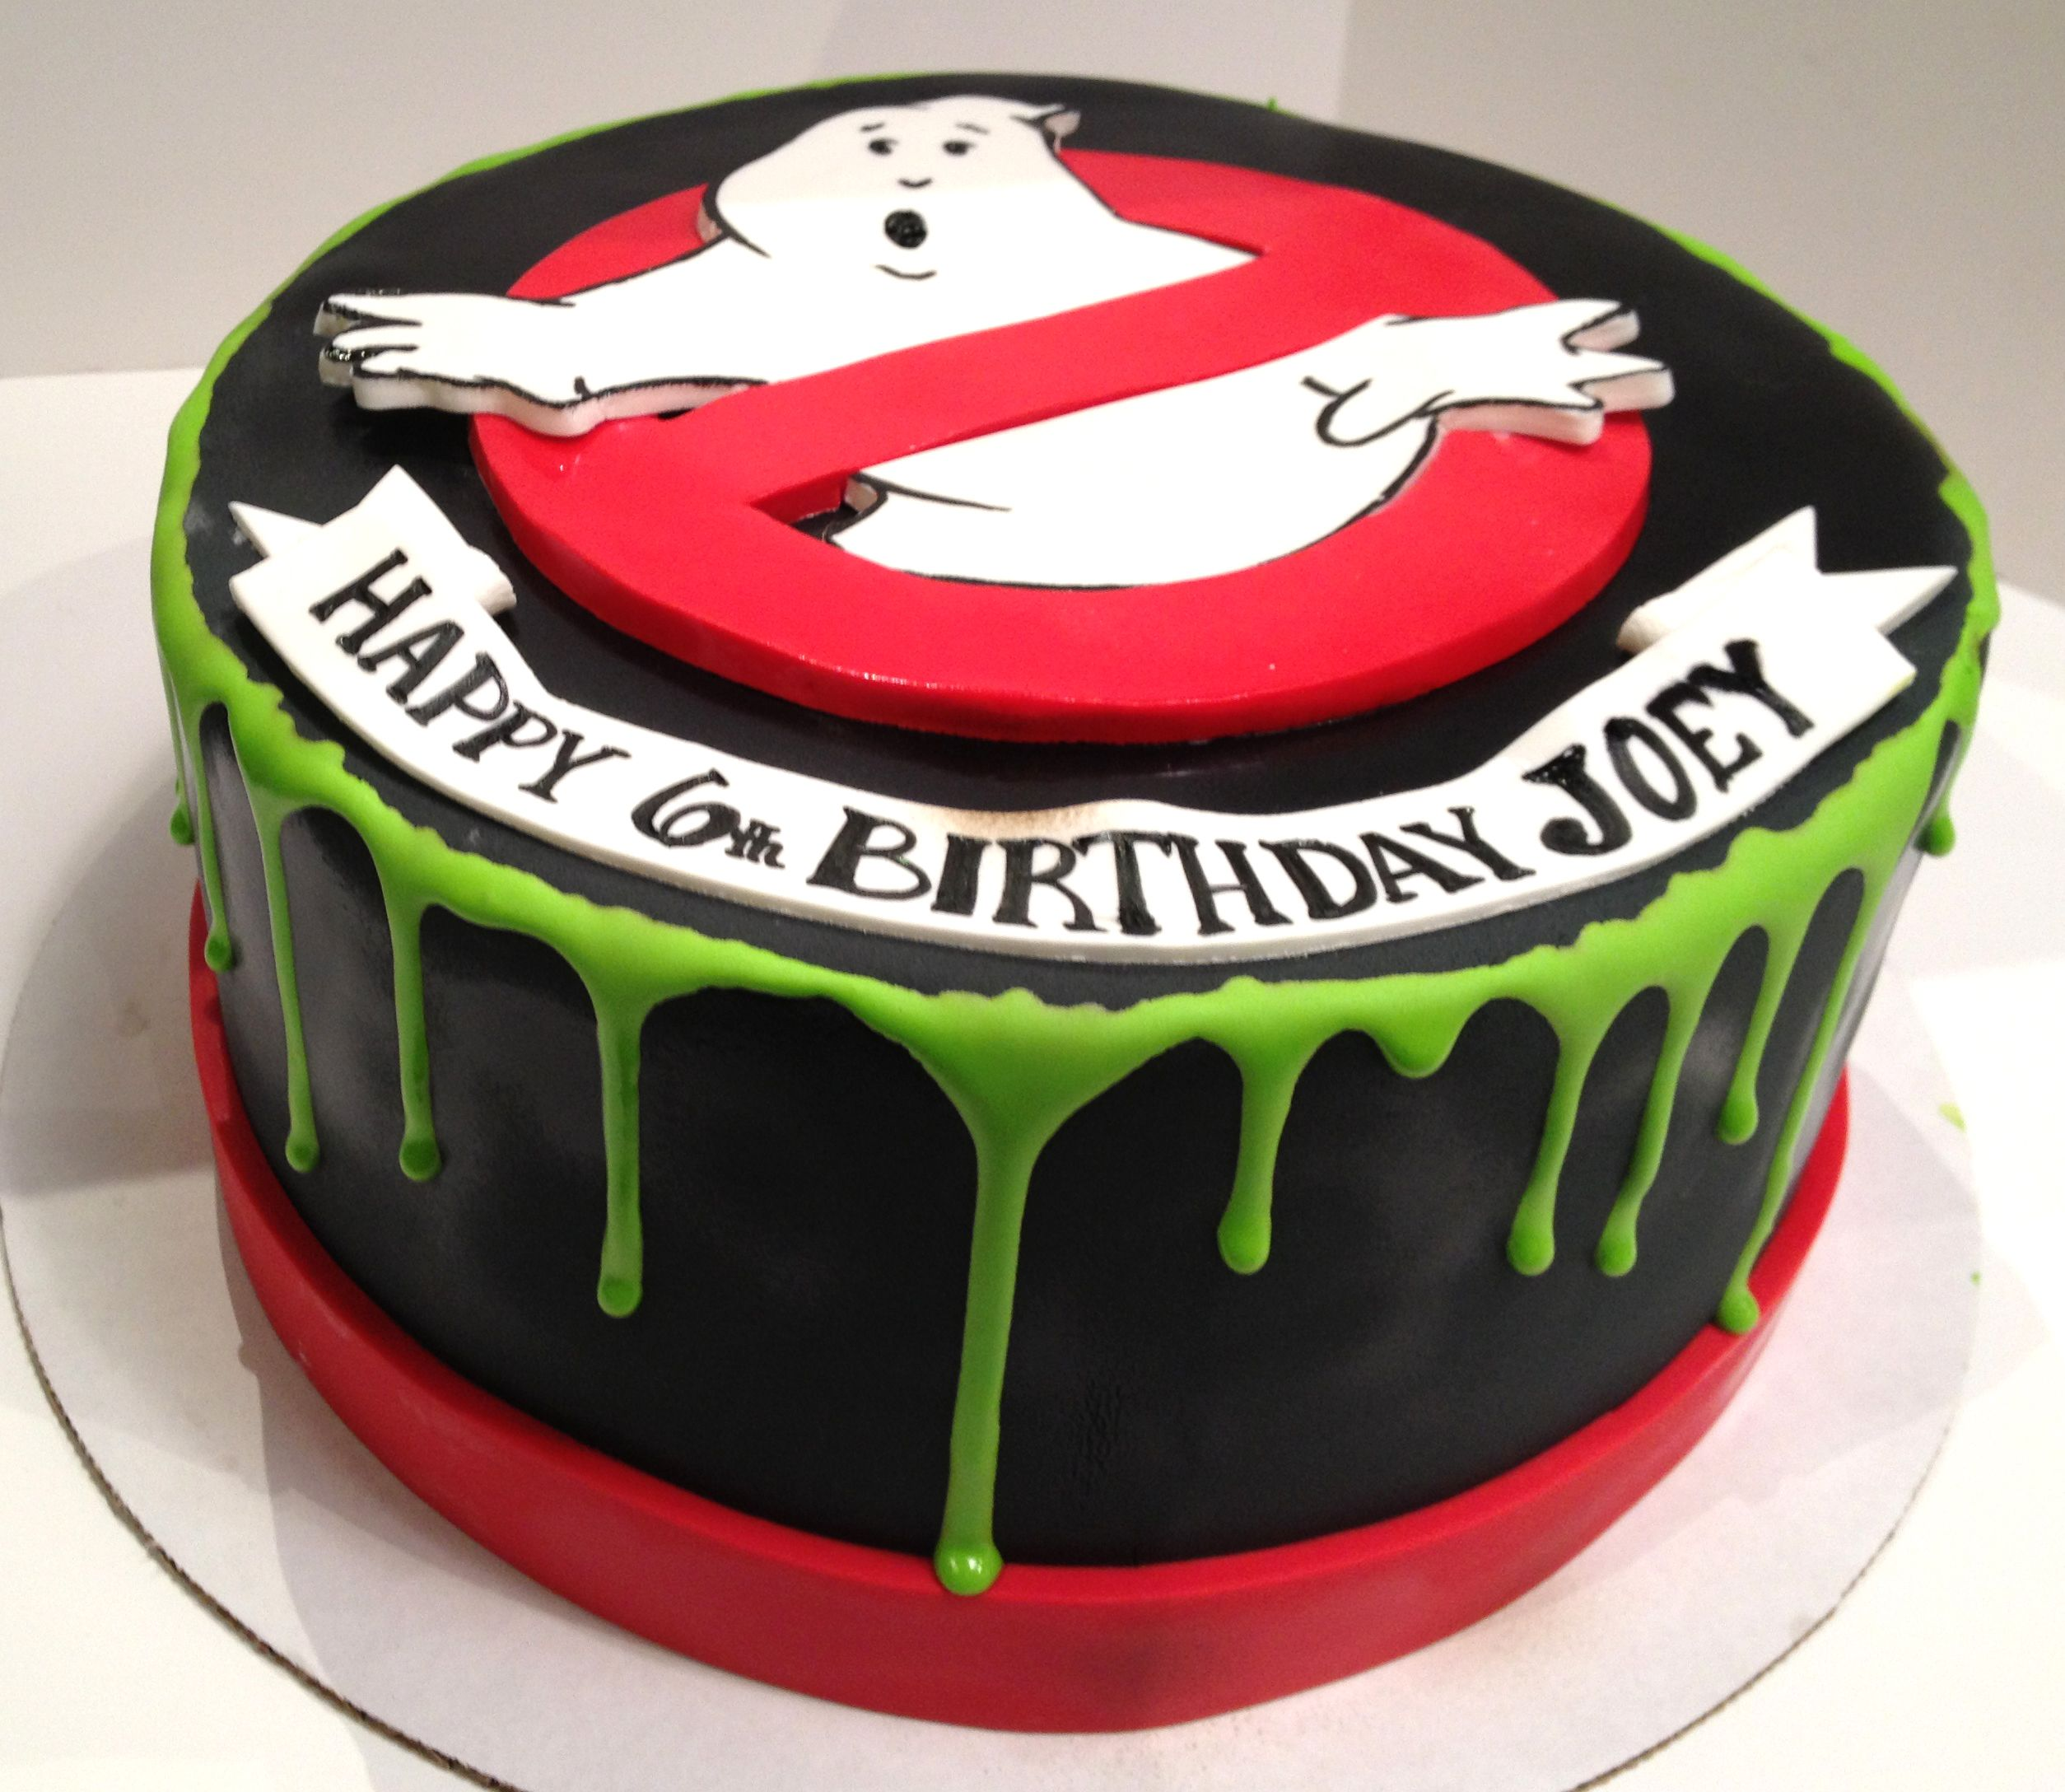 Stupendous Ghost Busters Birthday Cake With Images Ghostbusters Funny Birthday Cards Online Alyptdamsfinfo